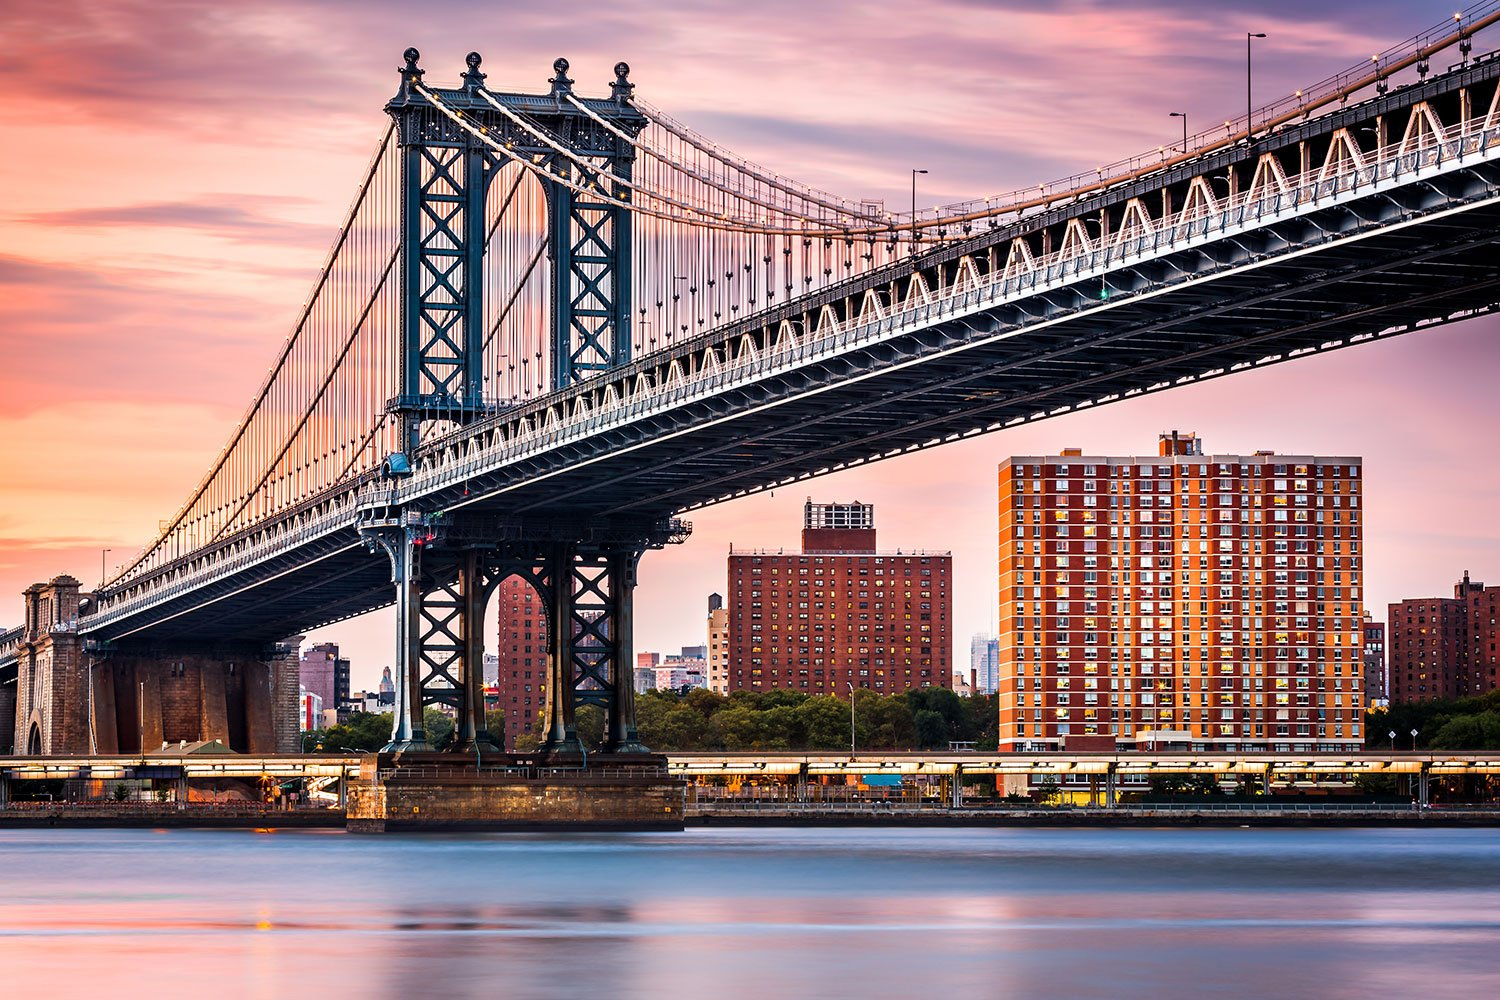 Wall Murals: Manhattan Bridge at sunset